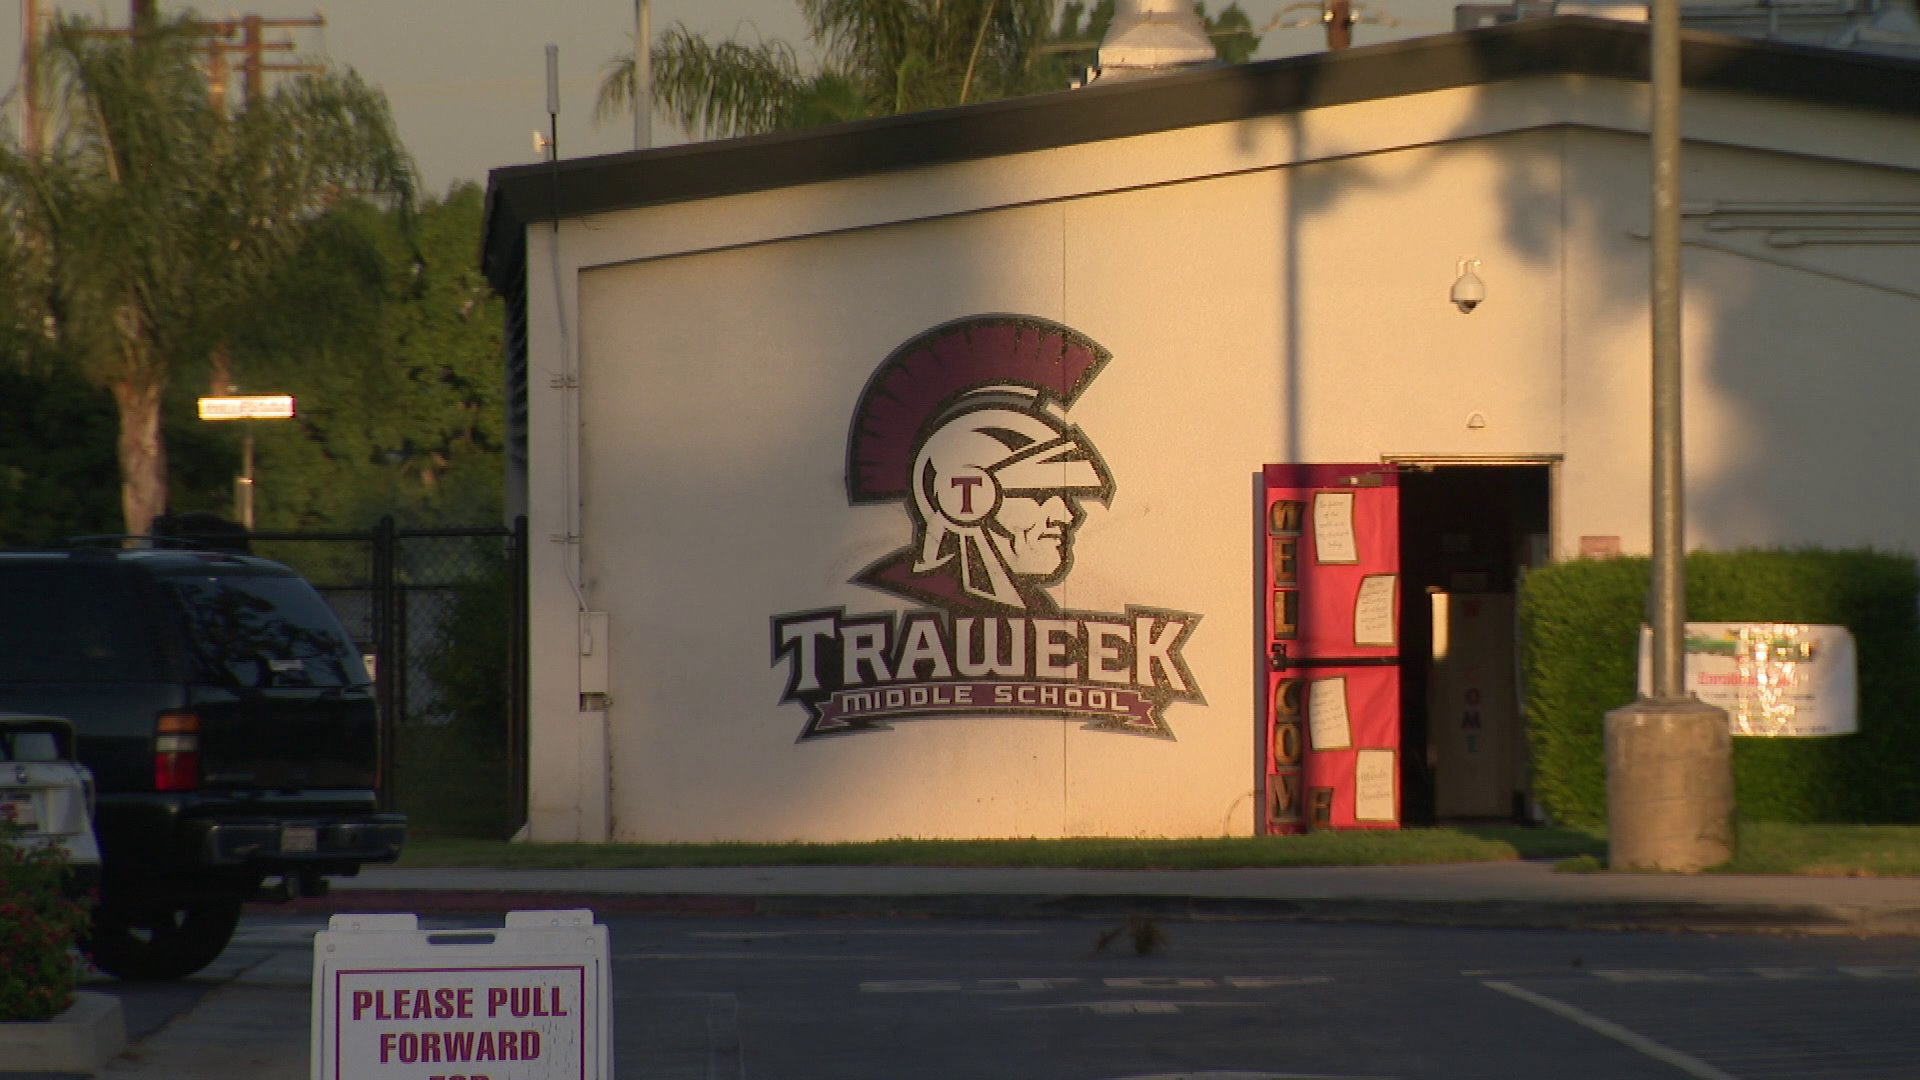 Traweek Middle School in West Covina is seen on Sep. 6, 2019. (Credit: KTLA)